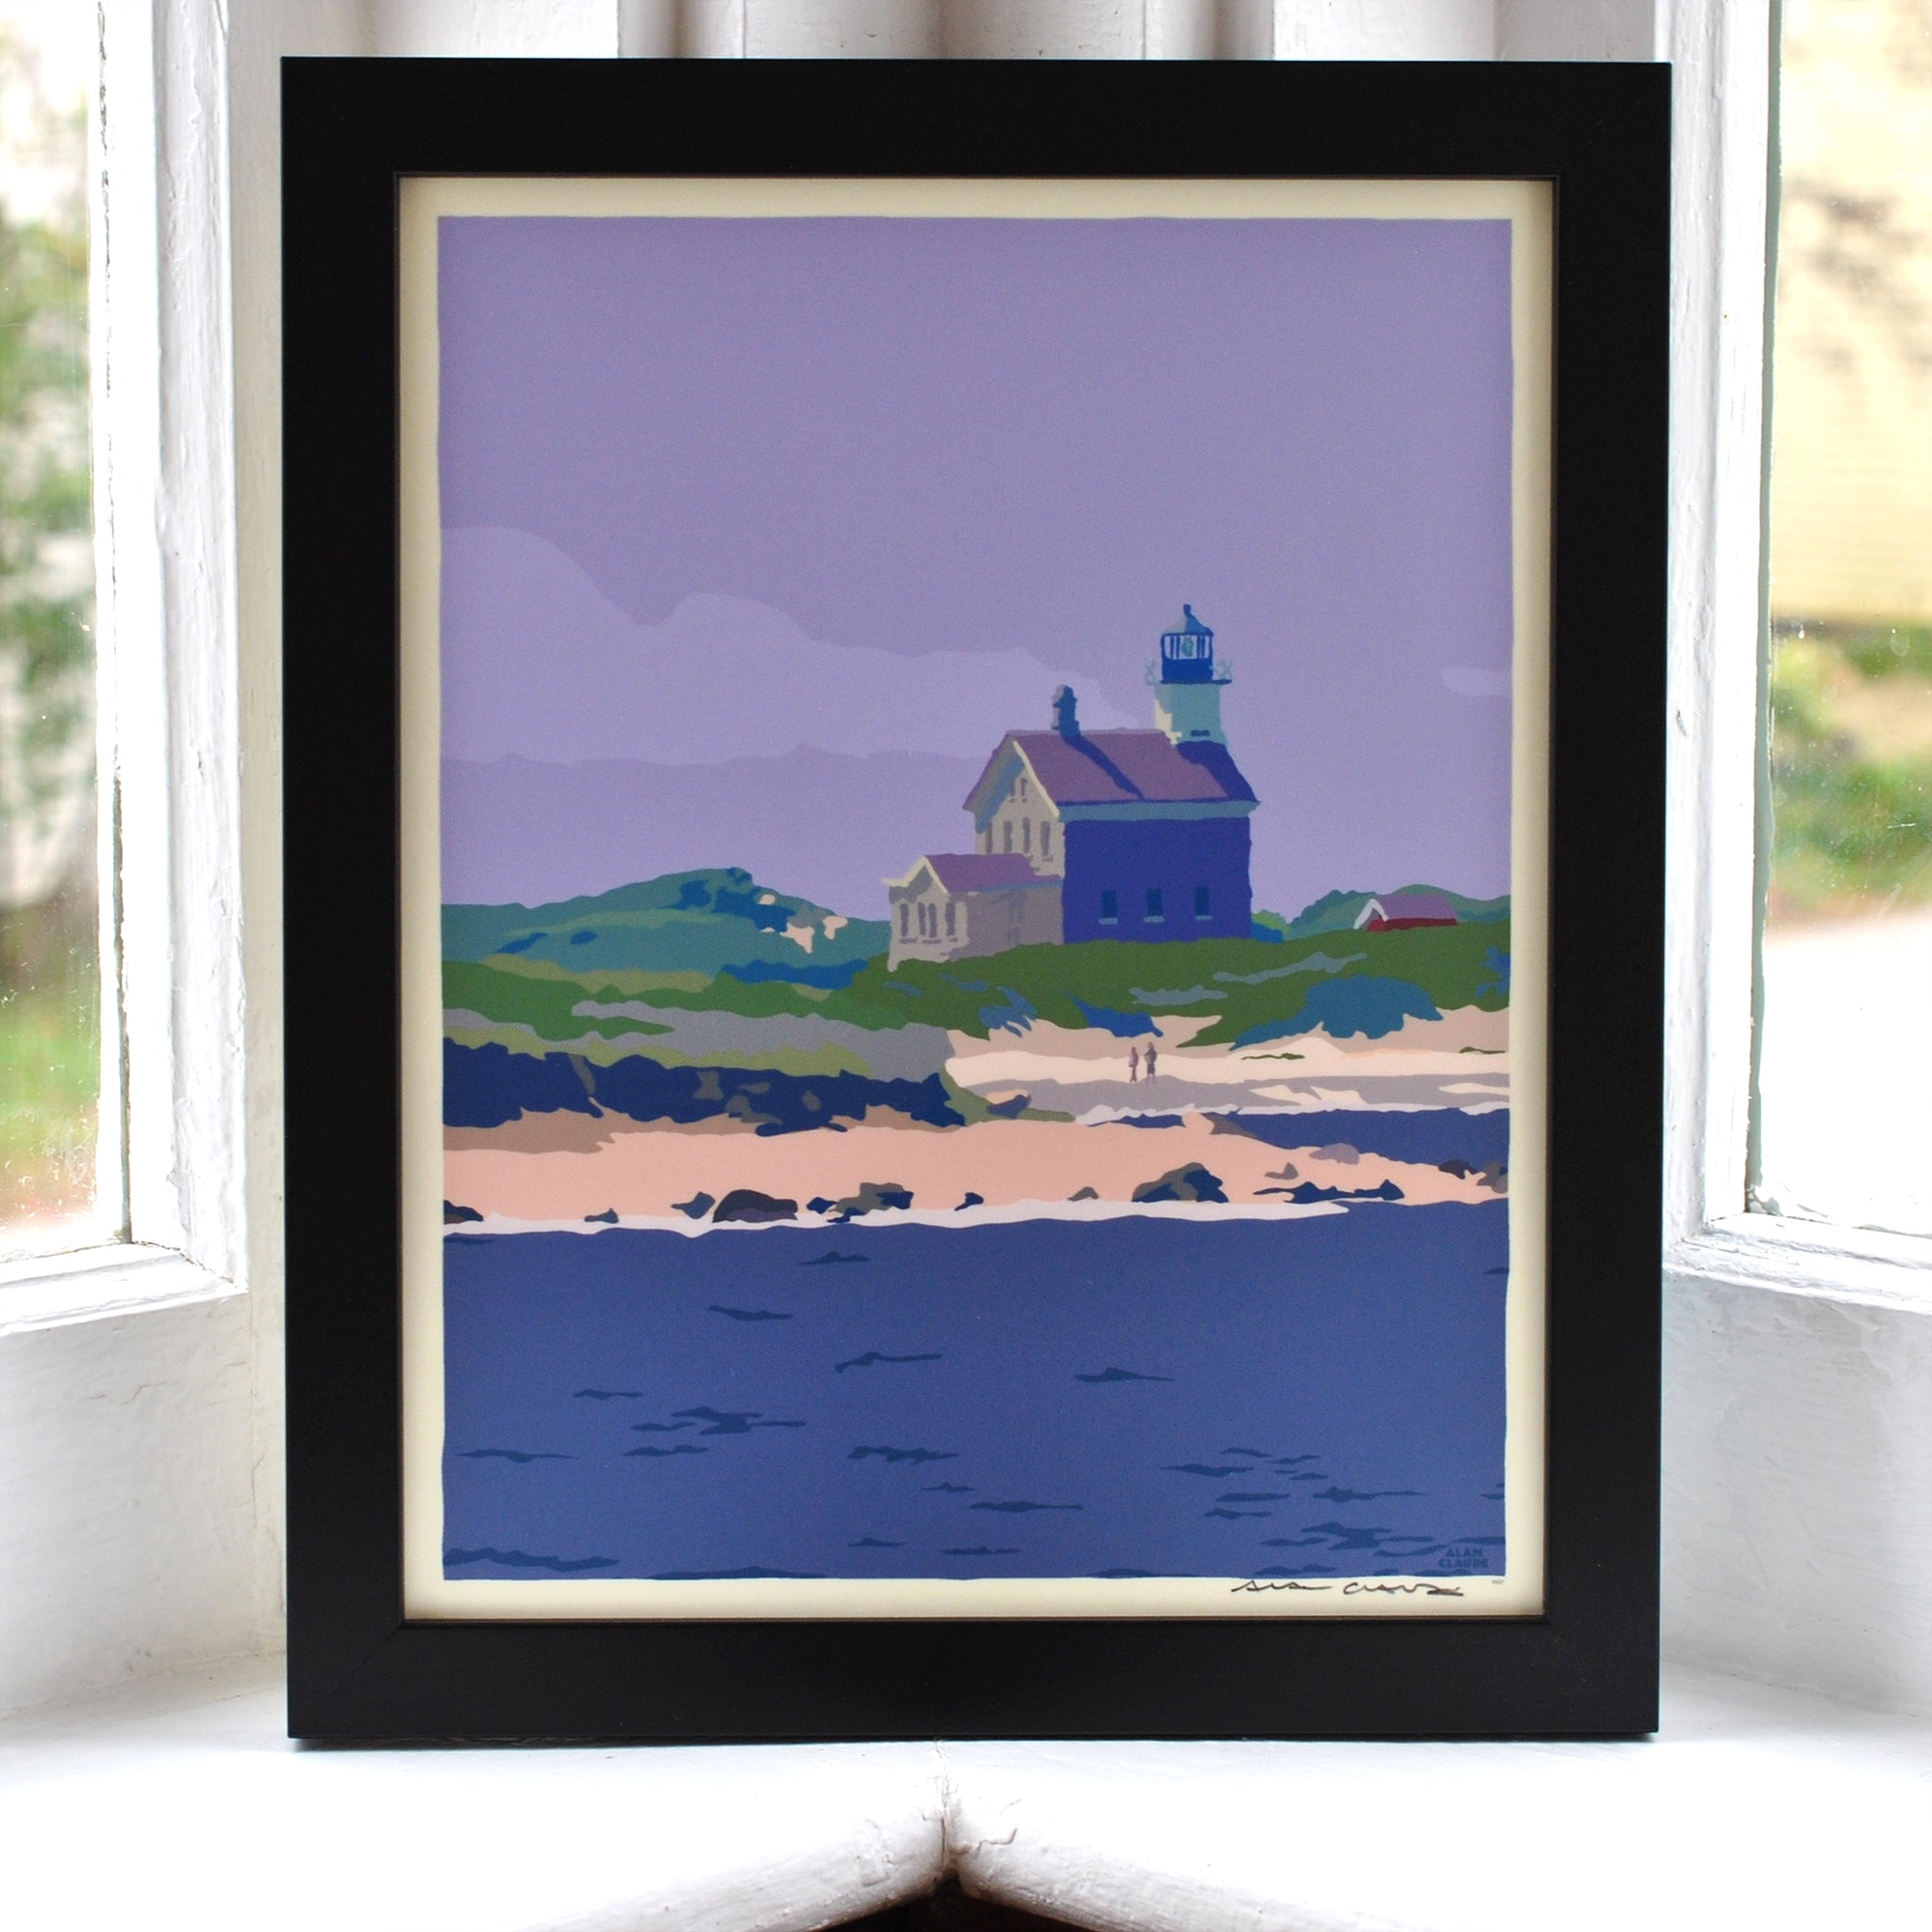 "Block Island North Light Art Print 8"" x 10"" Framed Wall Poster - Rhode Island"